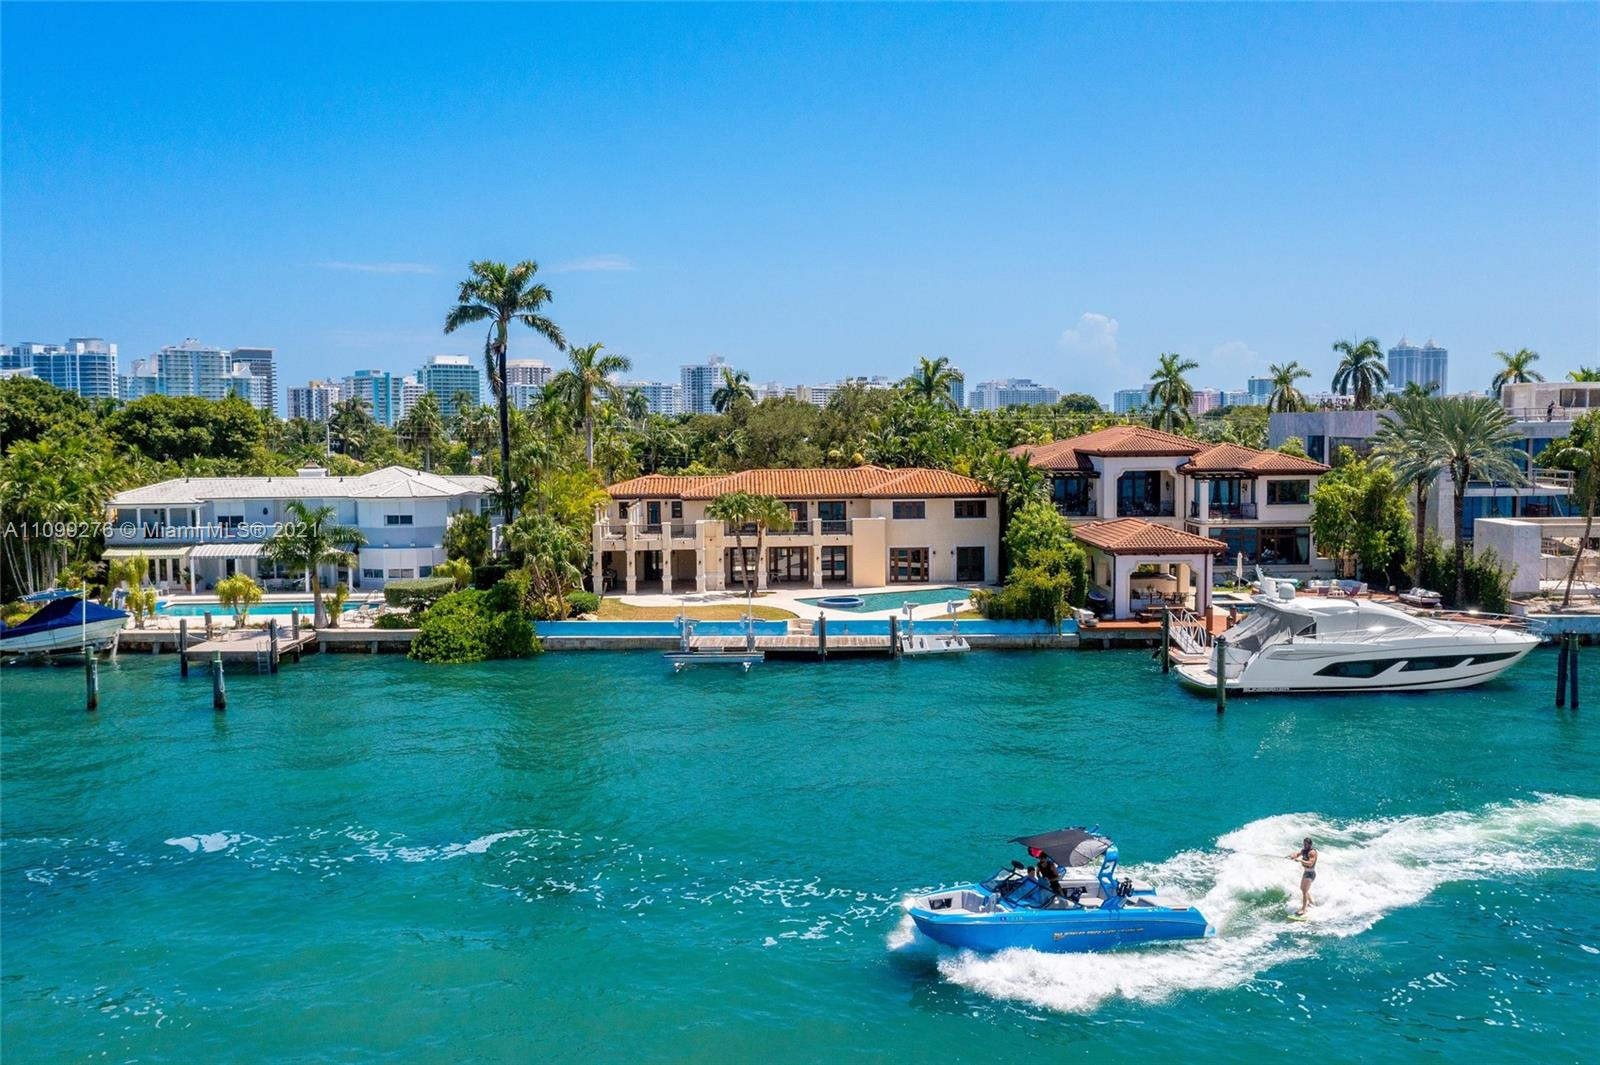 One of the only available opportunities to acquire an Estate size property on the most sought after street in Miami Beach, North Bay Road. This classic Pancoast home can be renovated & updated to your desired tastes or build your Compound on this oversized 25,215 SF Lot w/ 103' on the Open Bay. Enjoy breathtaking Wide Bay and Downtown Miami skyline views from one of the most coveted locations in Miami. Upper North Bay Road offers a private Residential setting which is conveniently located within Walking Distance to La Gorce Country Club & a short drive to Bal Harbour Shops, Sunset Harbour or South Beach. Take advantage of this opportunity to live amongst some of the most valuable homes that Miami Beach has to offer as North Bay has quickly become the most sought after address in town.